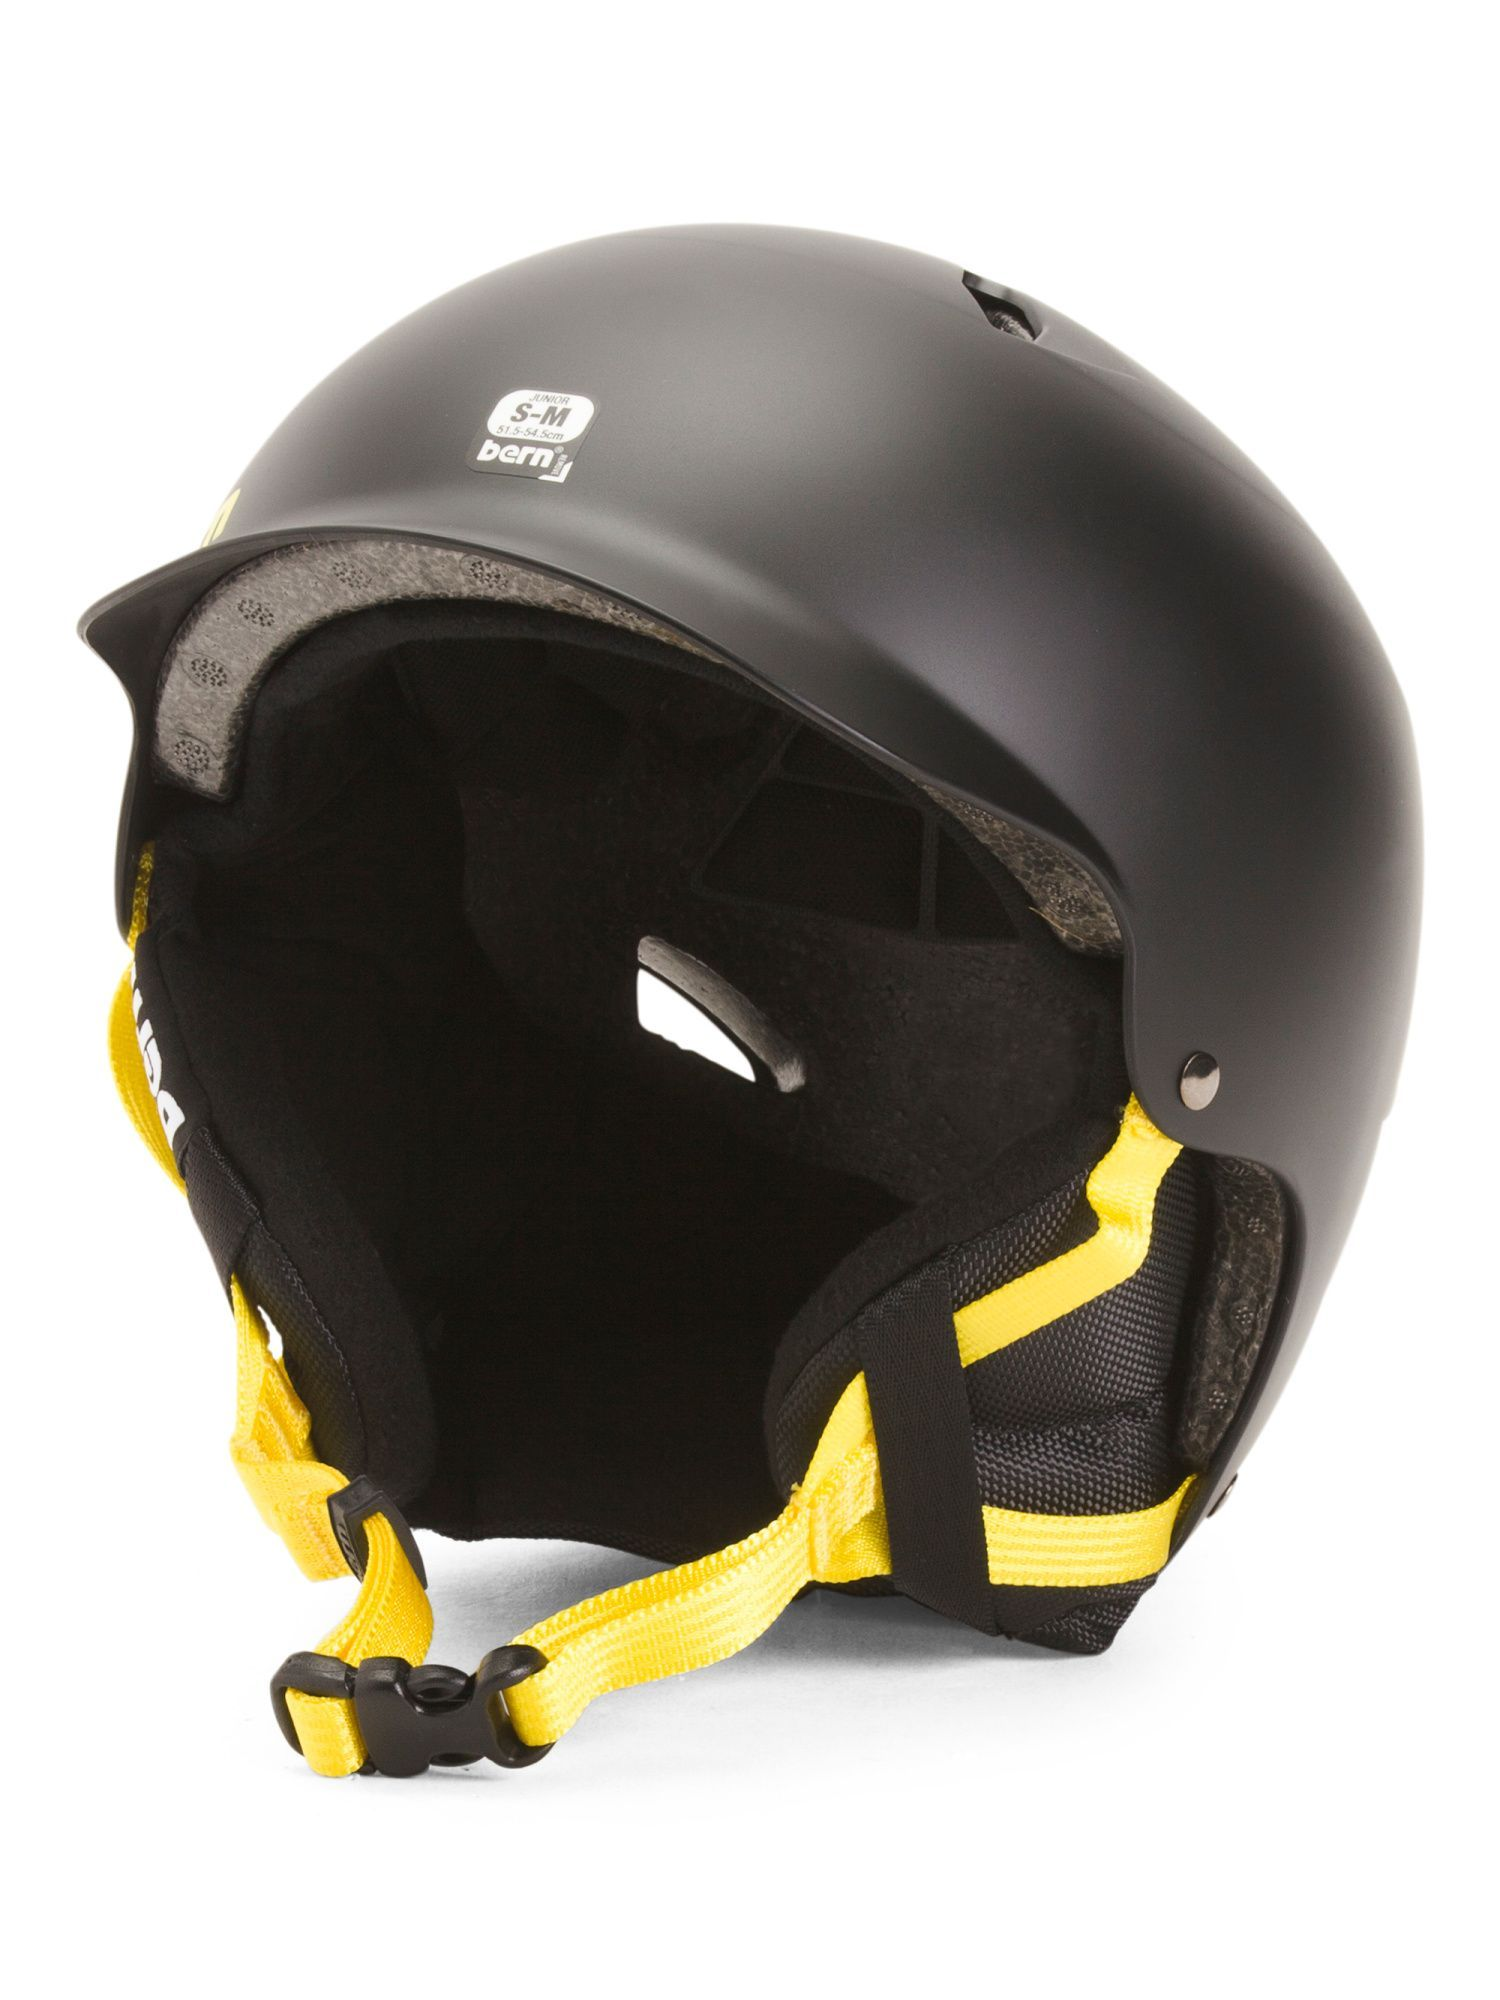 Bandito youth helmet products pinterest youth helmets and products